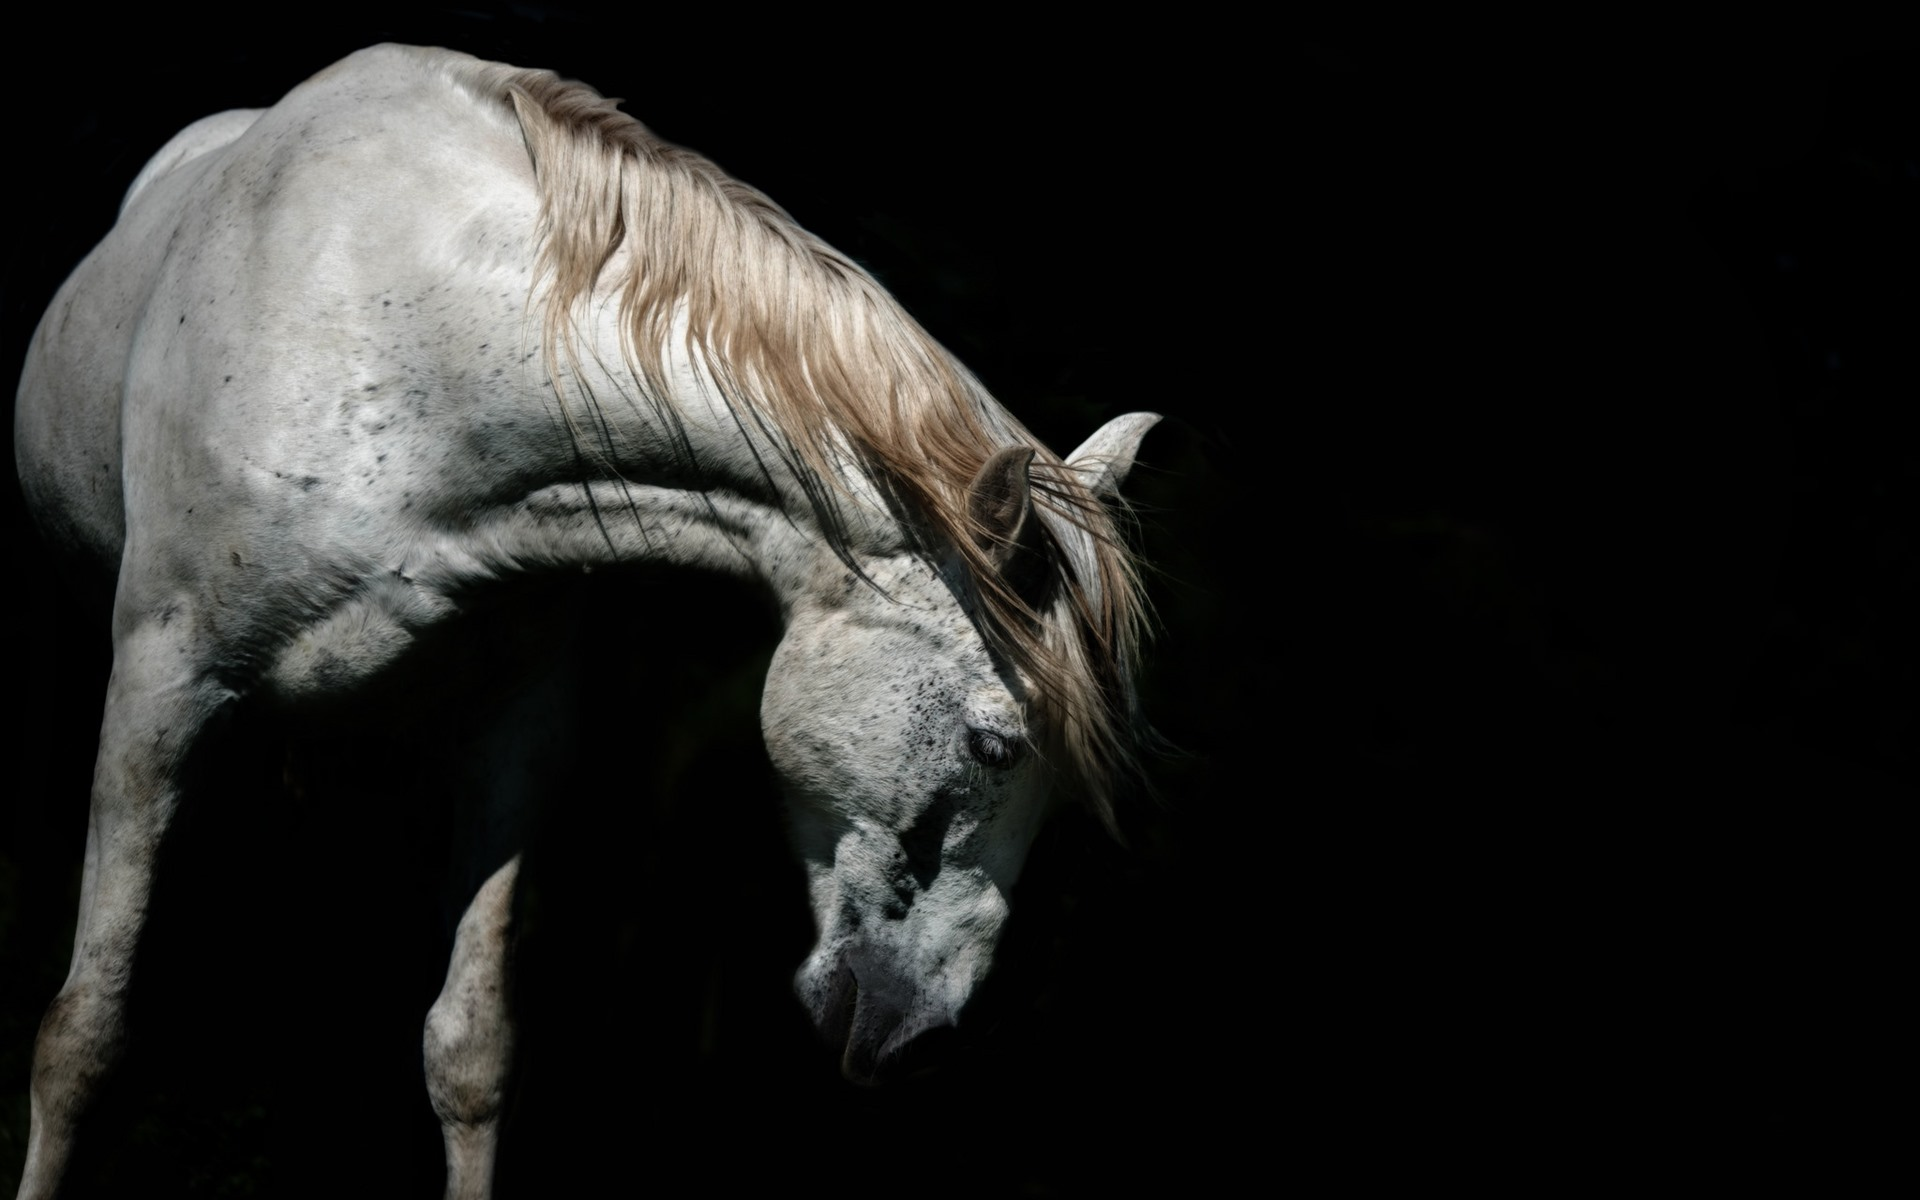 Wallpaper White Horse Head Black Background 1920x1200 Hd Picture Image